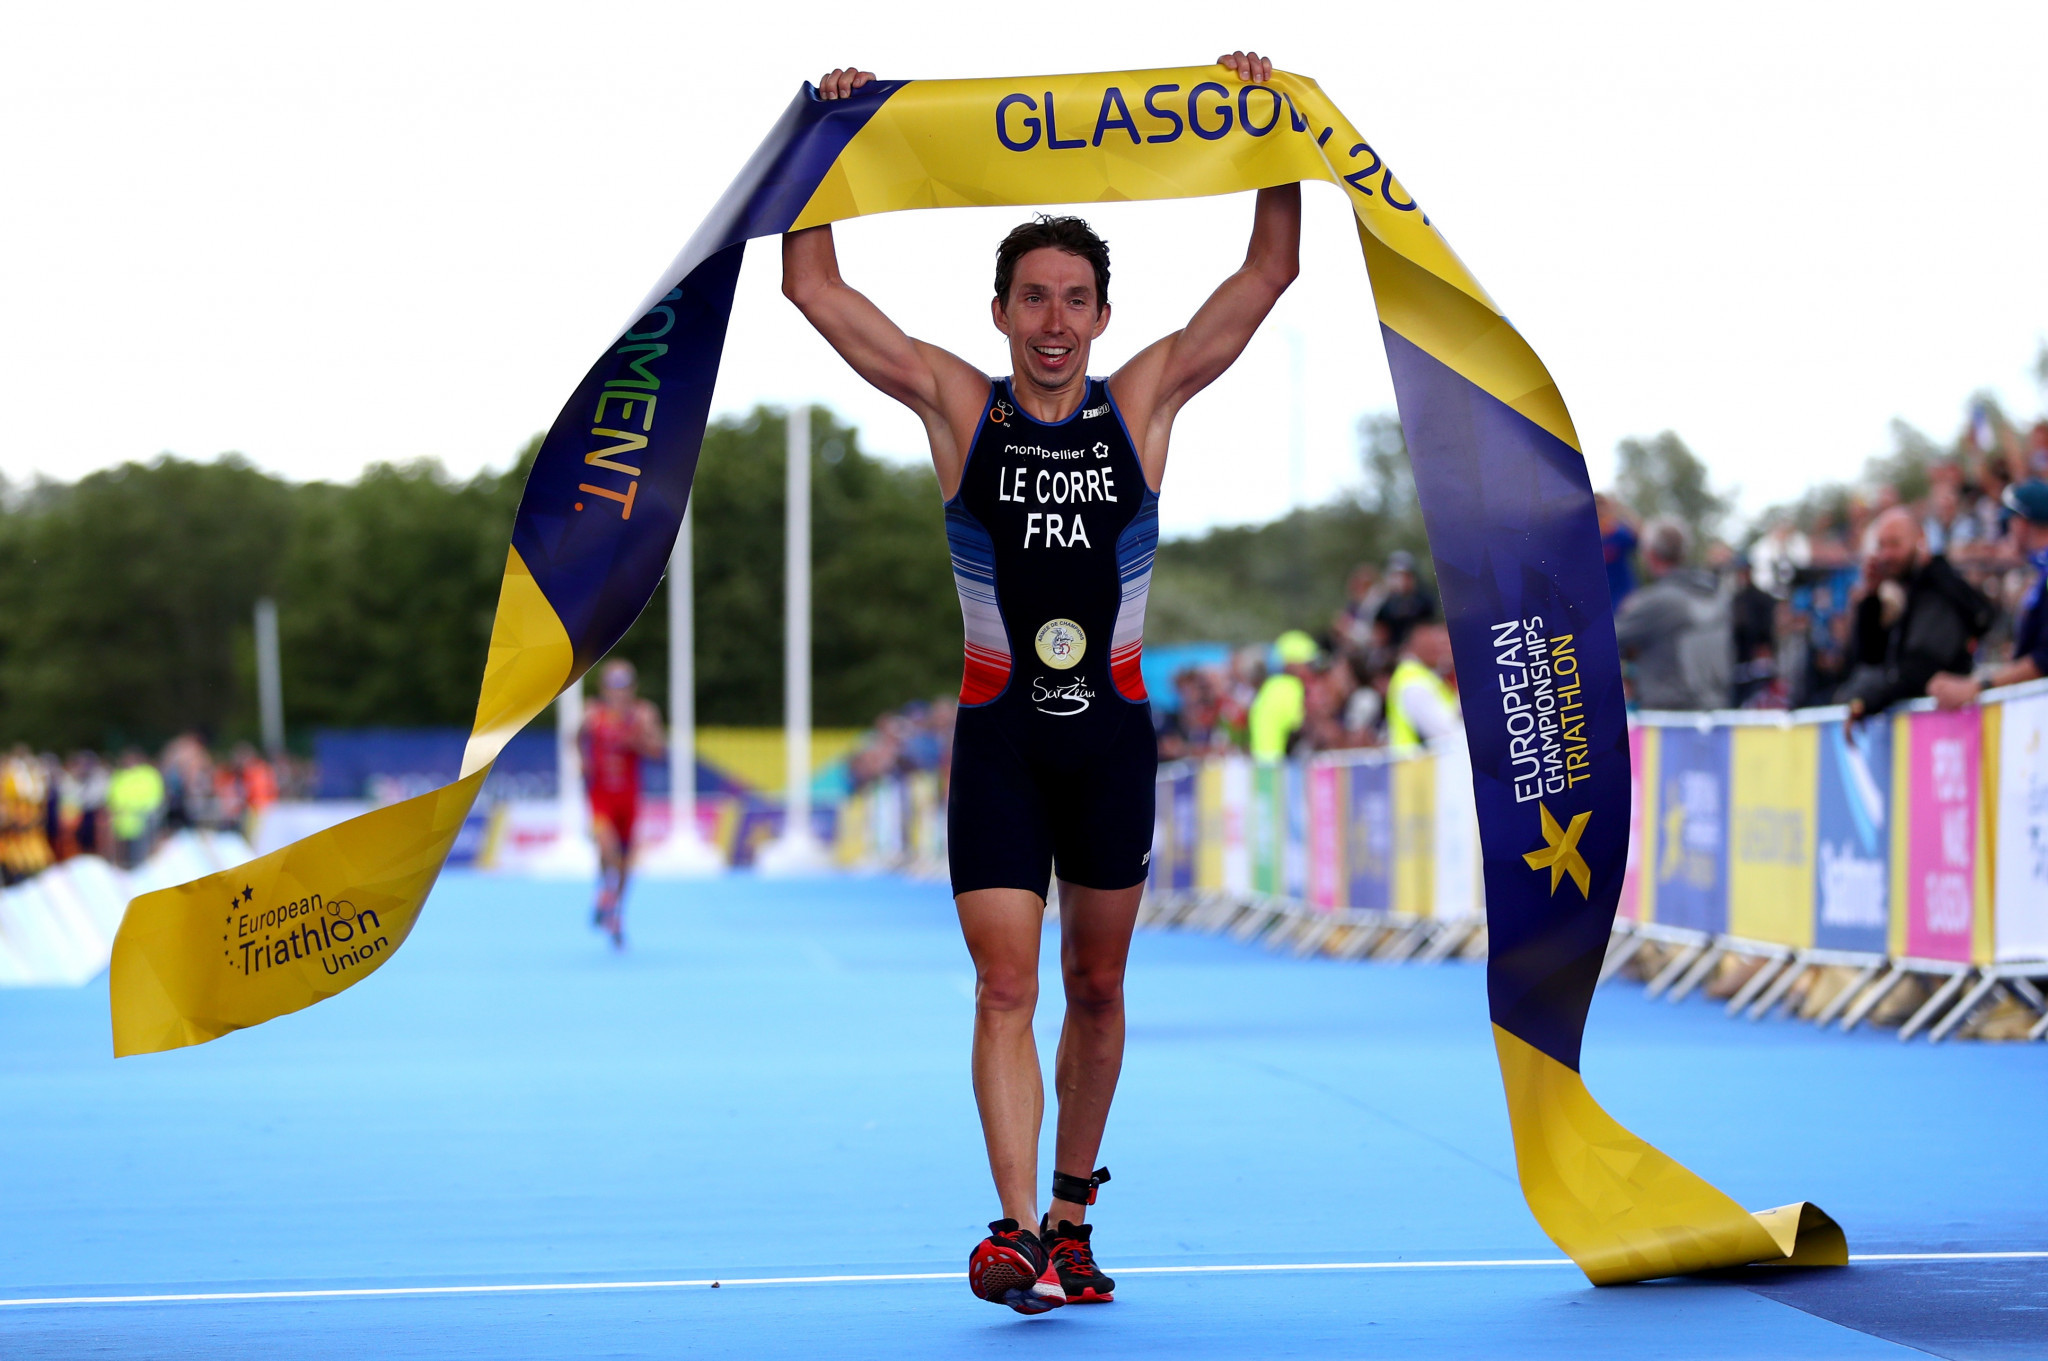 Over in Glasgow, France's Pierre Le Corre came out on top in the men's triathlon ©Getty Images